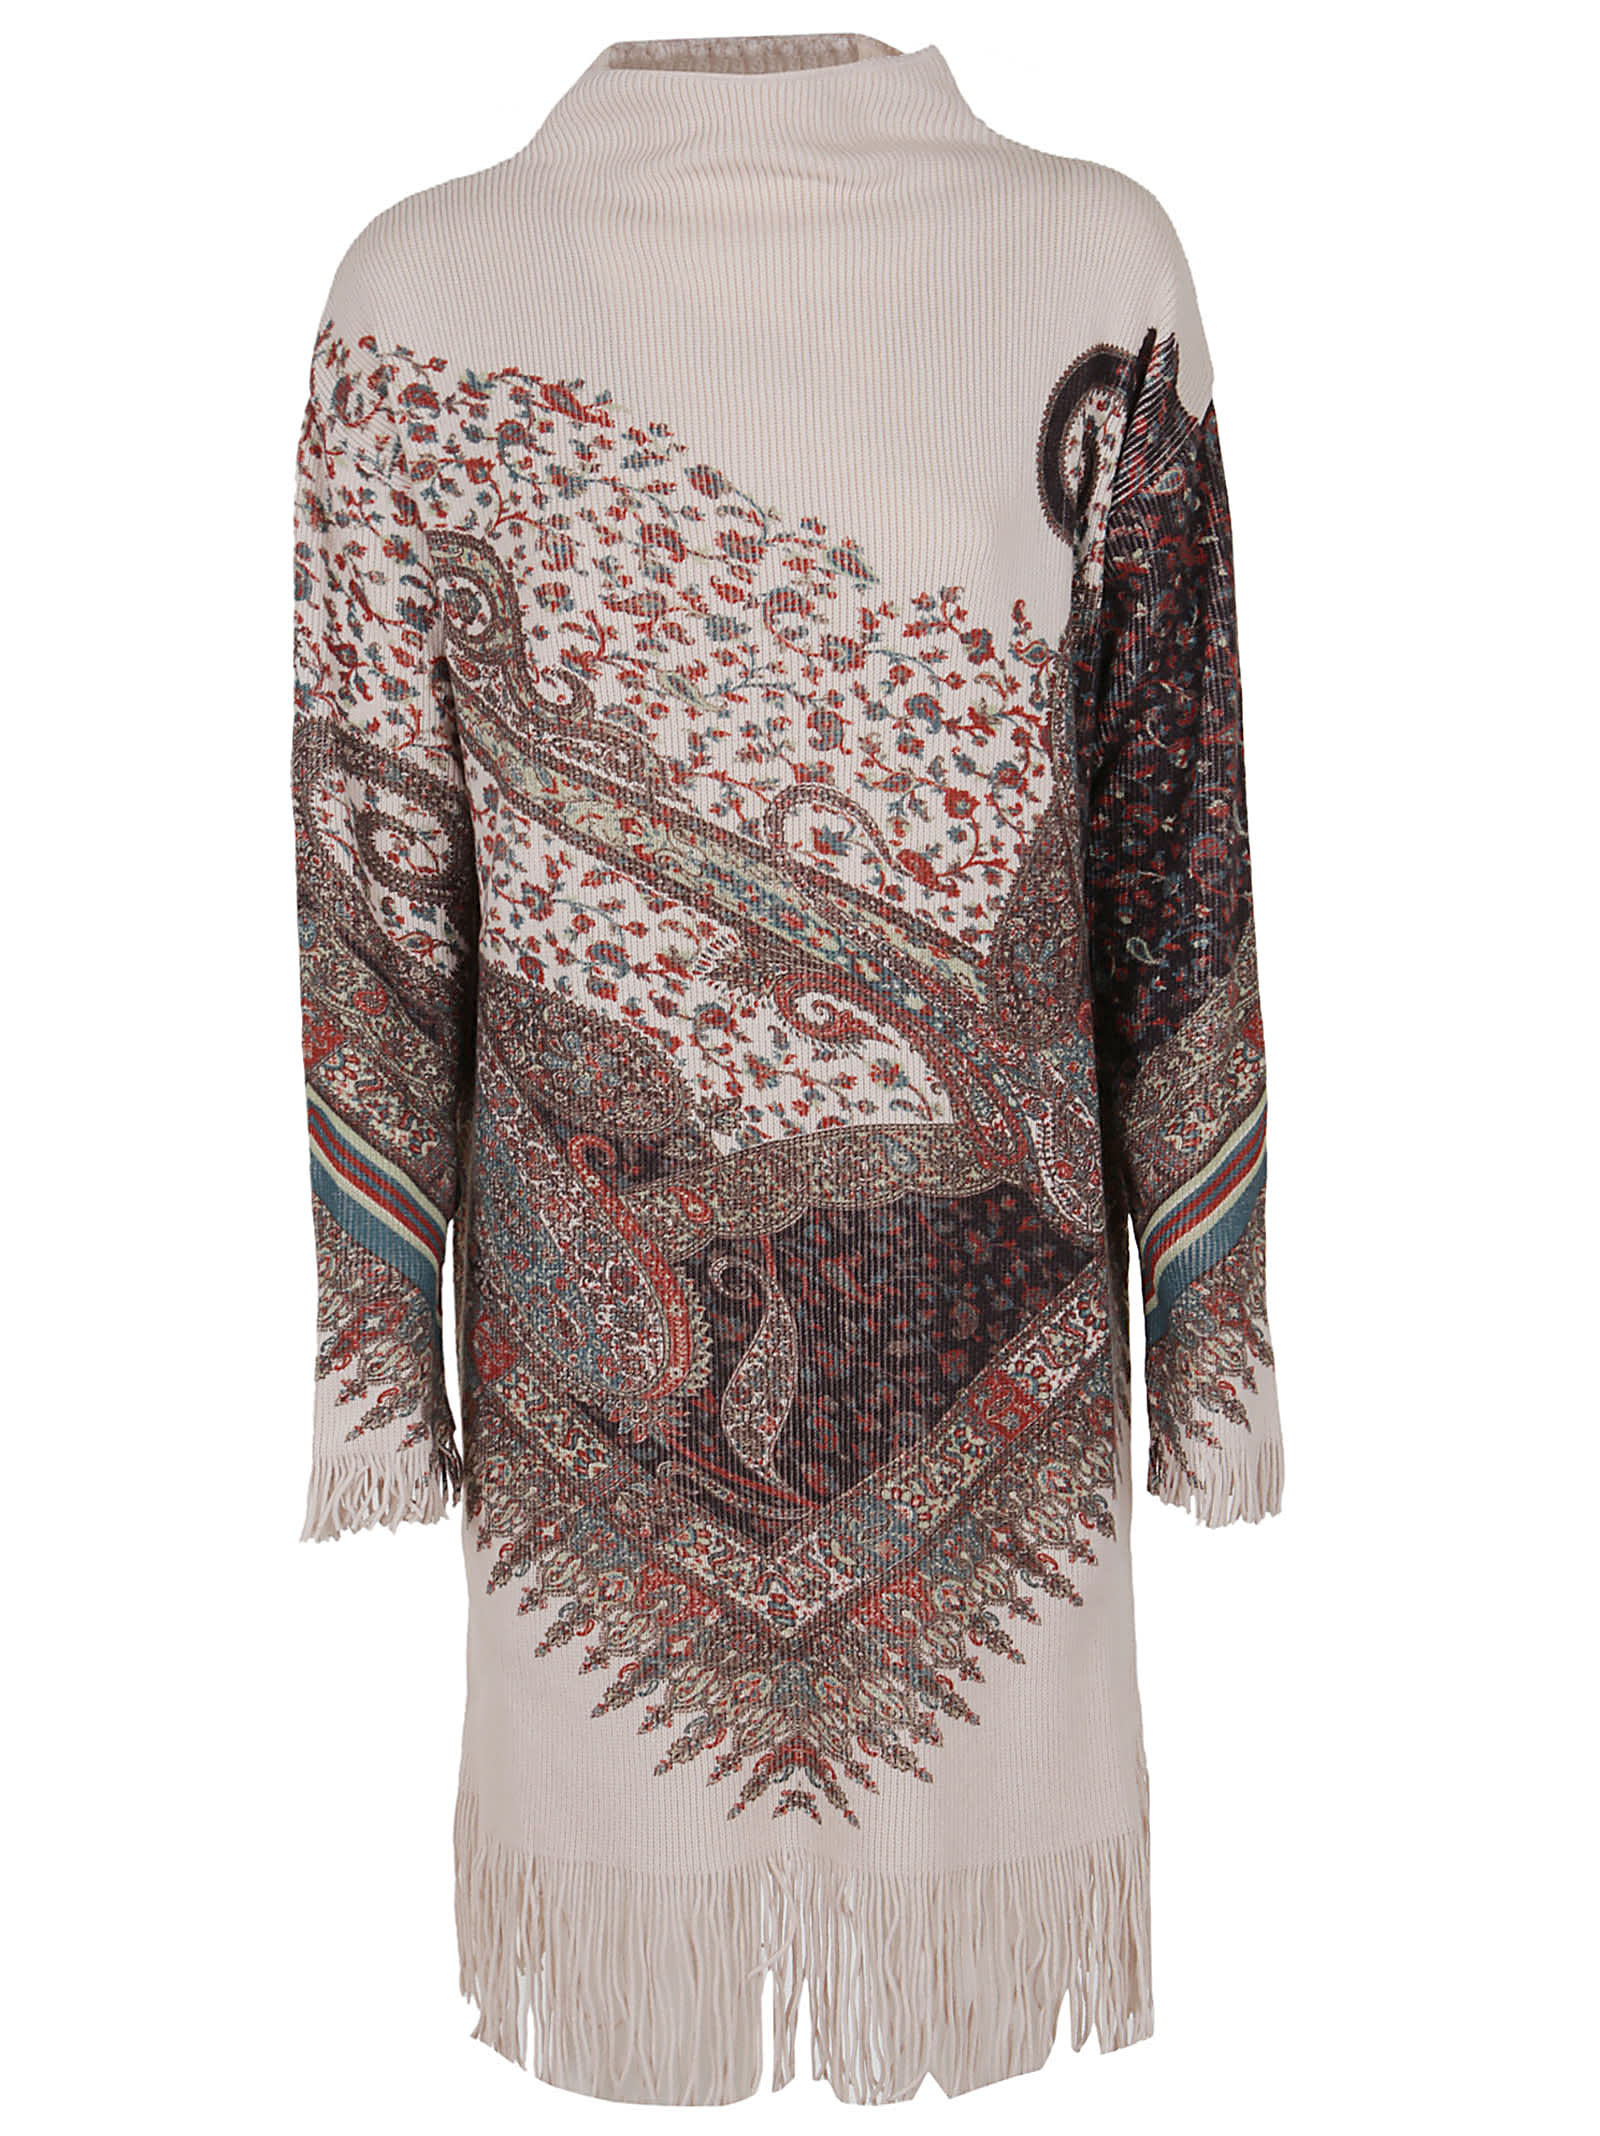 Etro Sweat Dress Oxfordshire